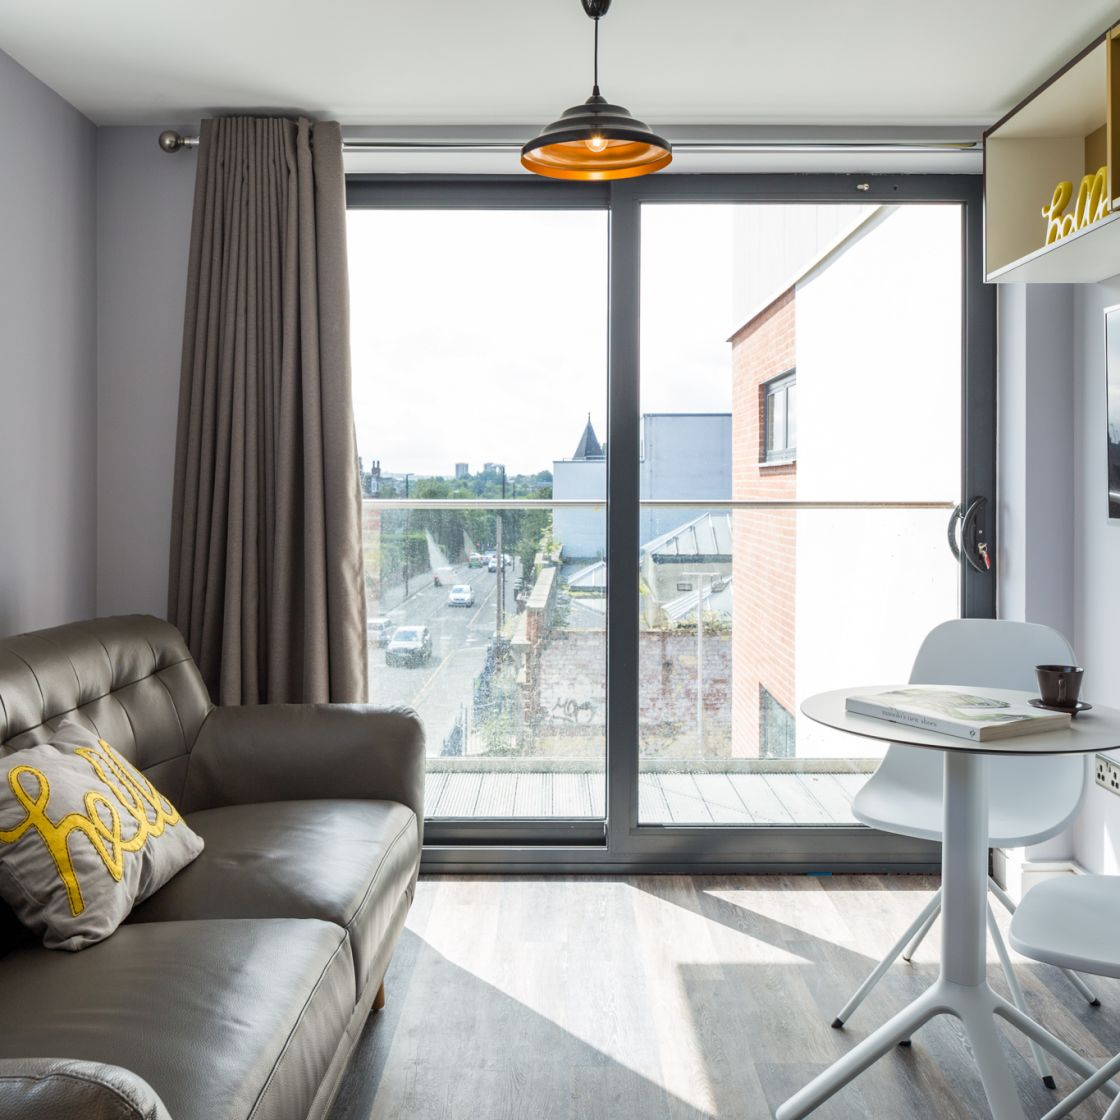 Grande Student Apartment in Leeds with Sofa and Balcony. IconInc, The Glassworks.